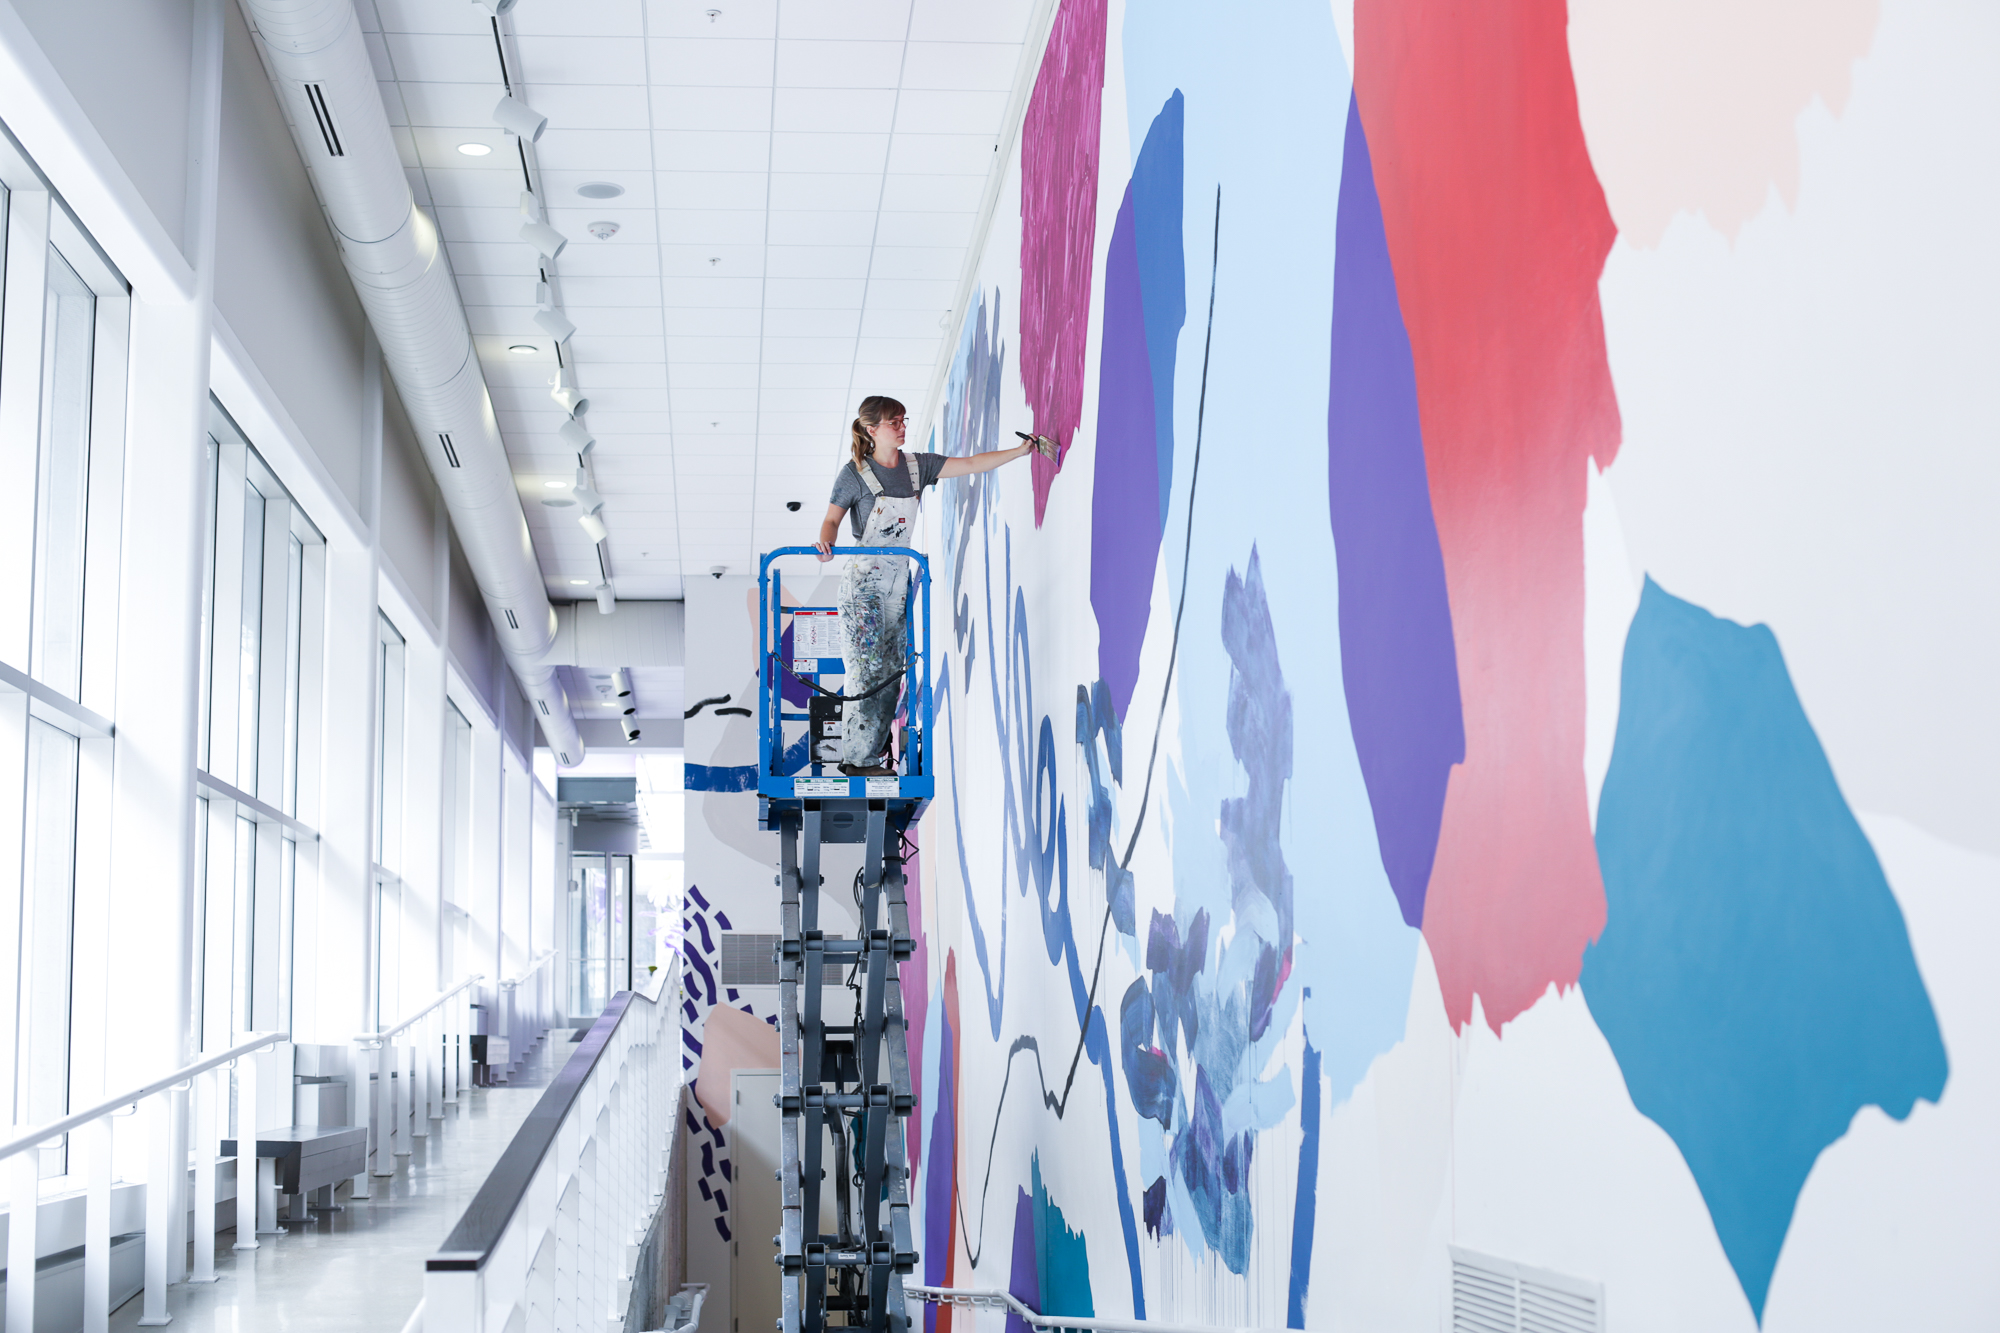 Heather Day paints the Pantone Color of the Year mural at the Urban Institute of Contemporary Art